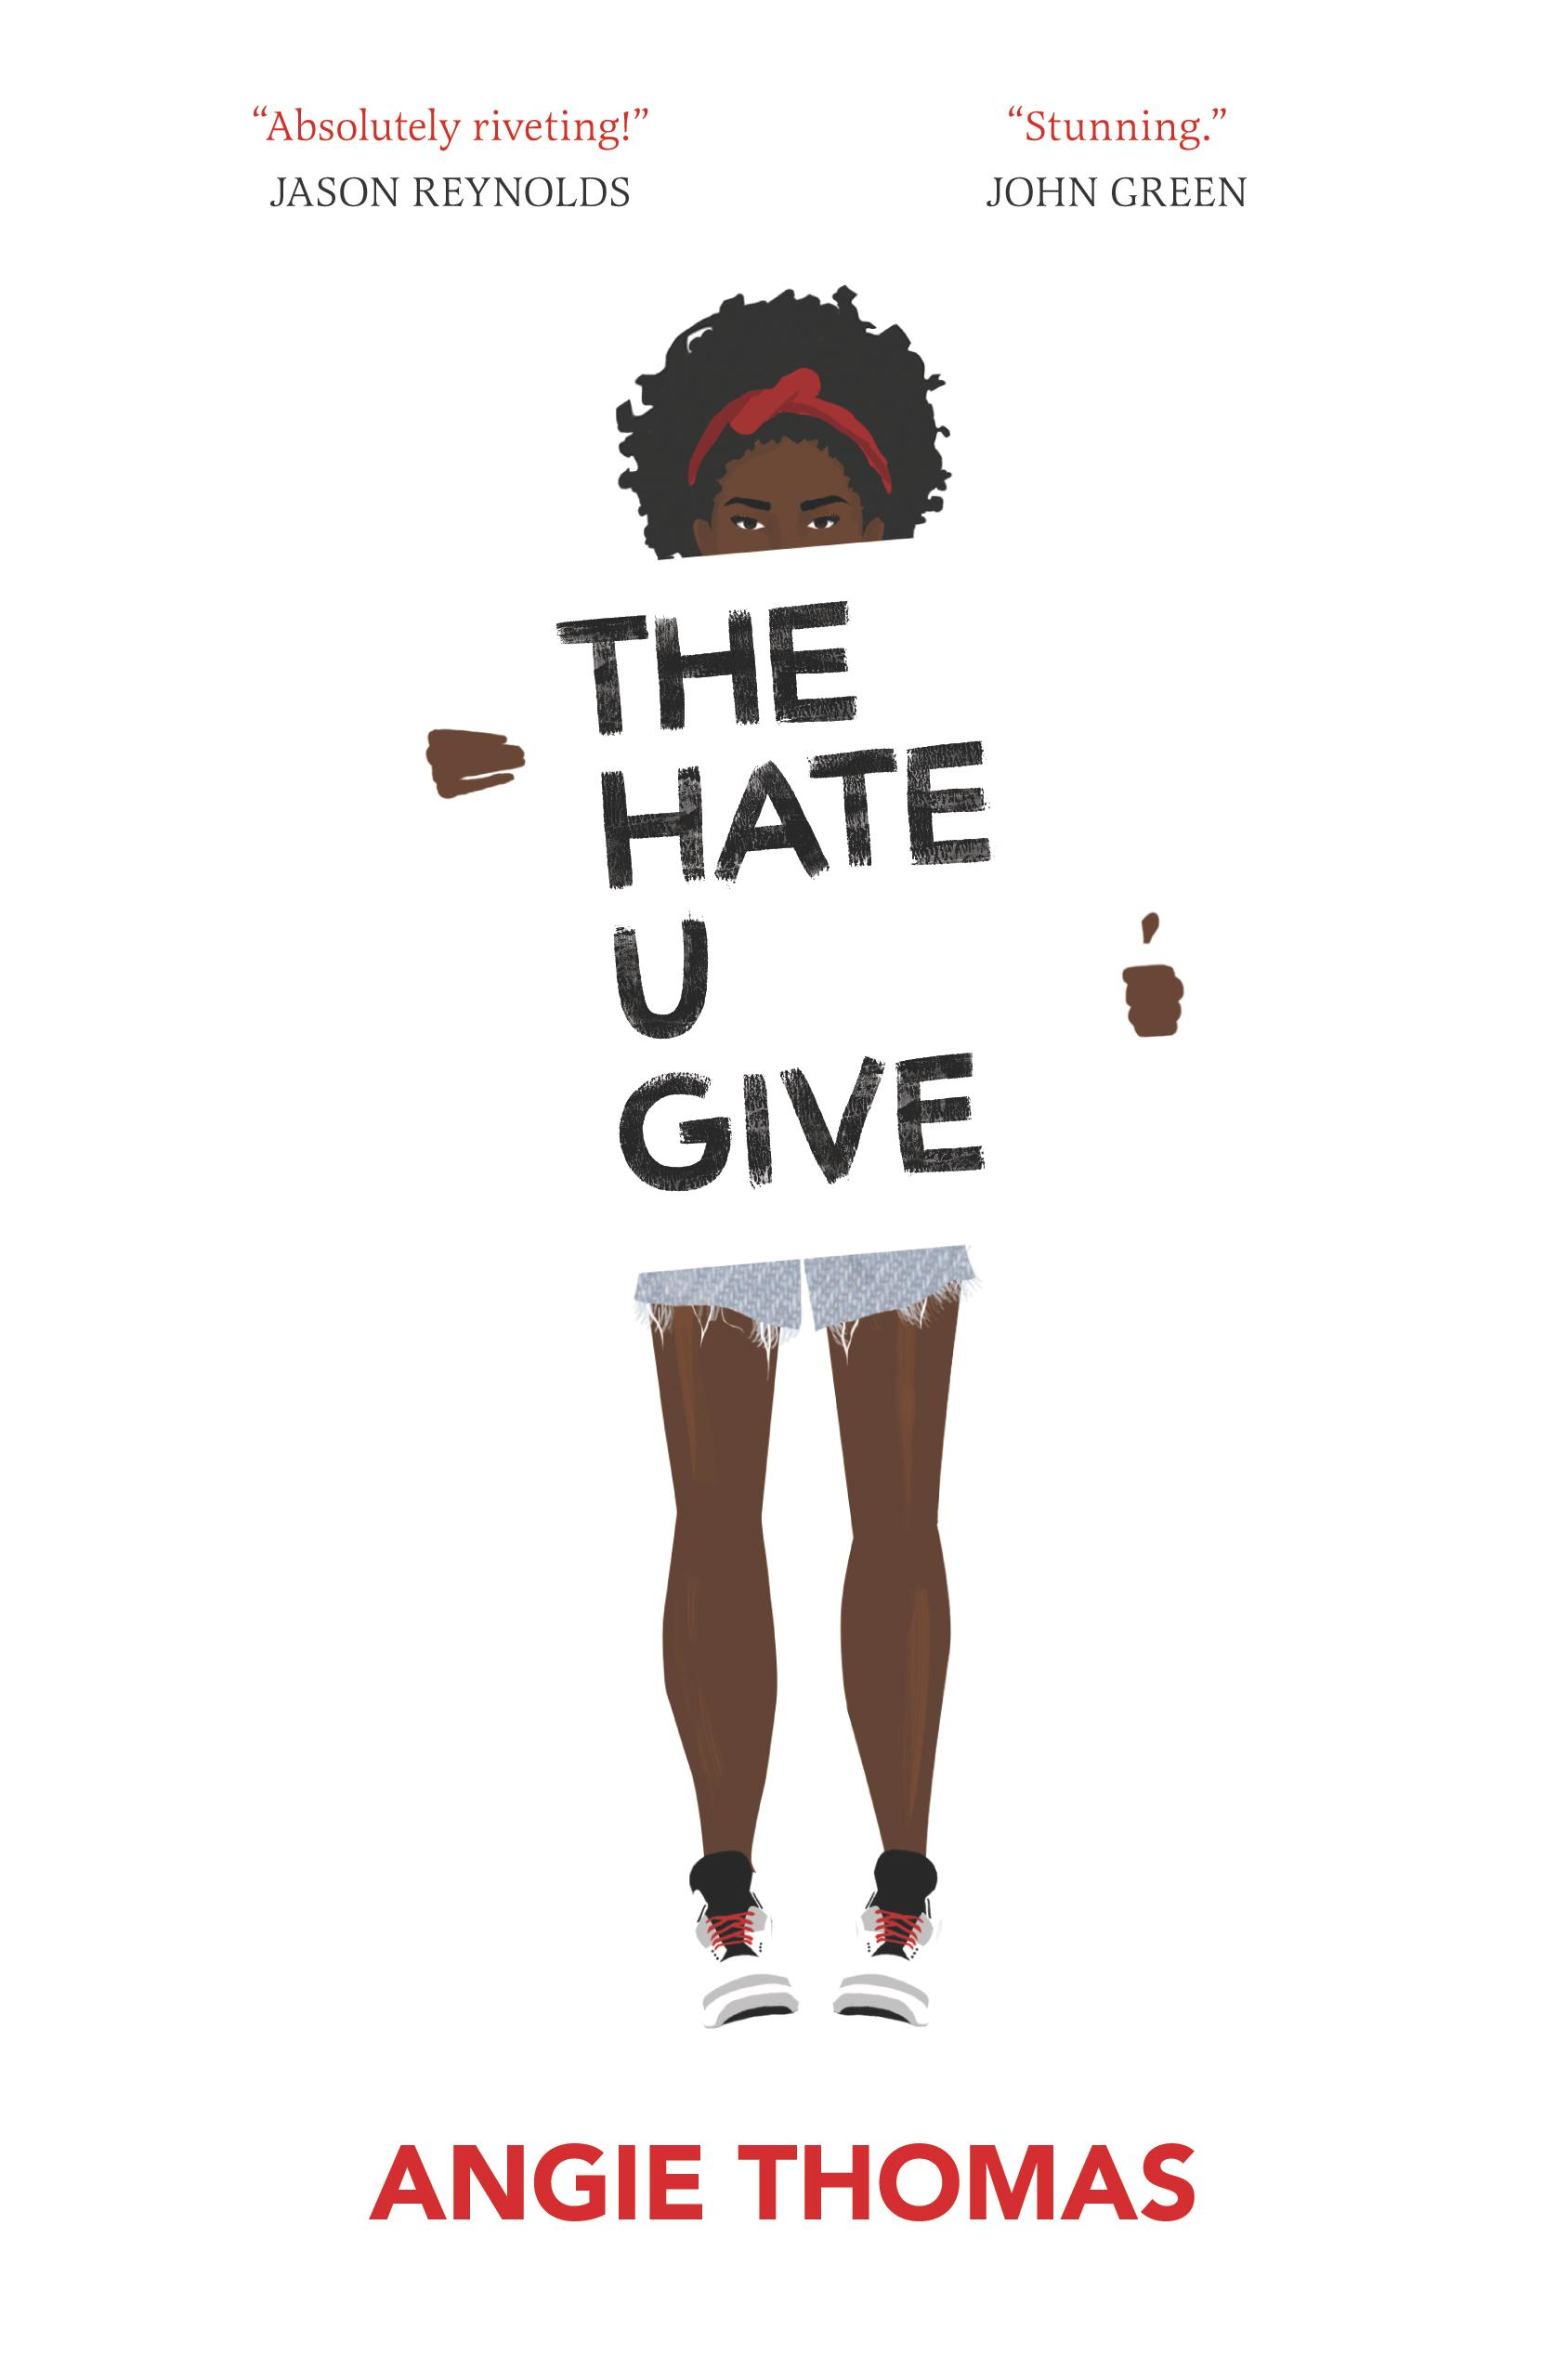 Student Book Discussion - The Hate U Give